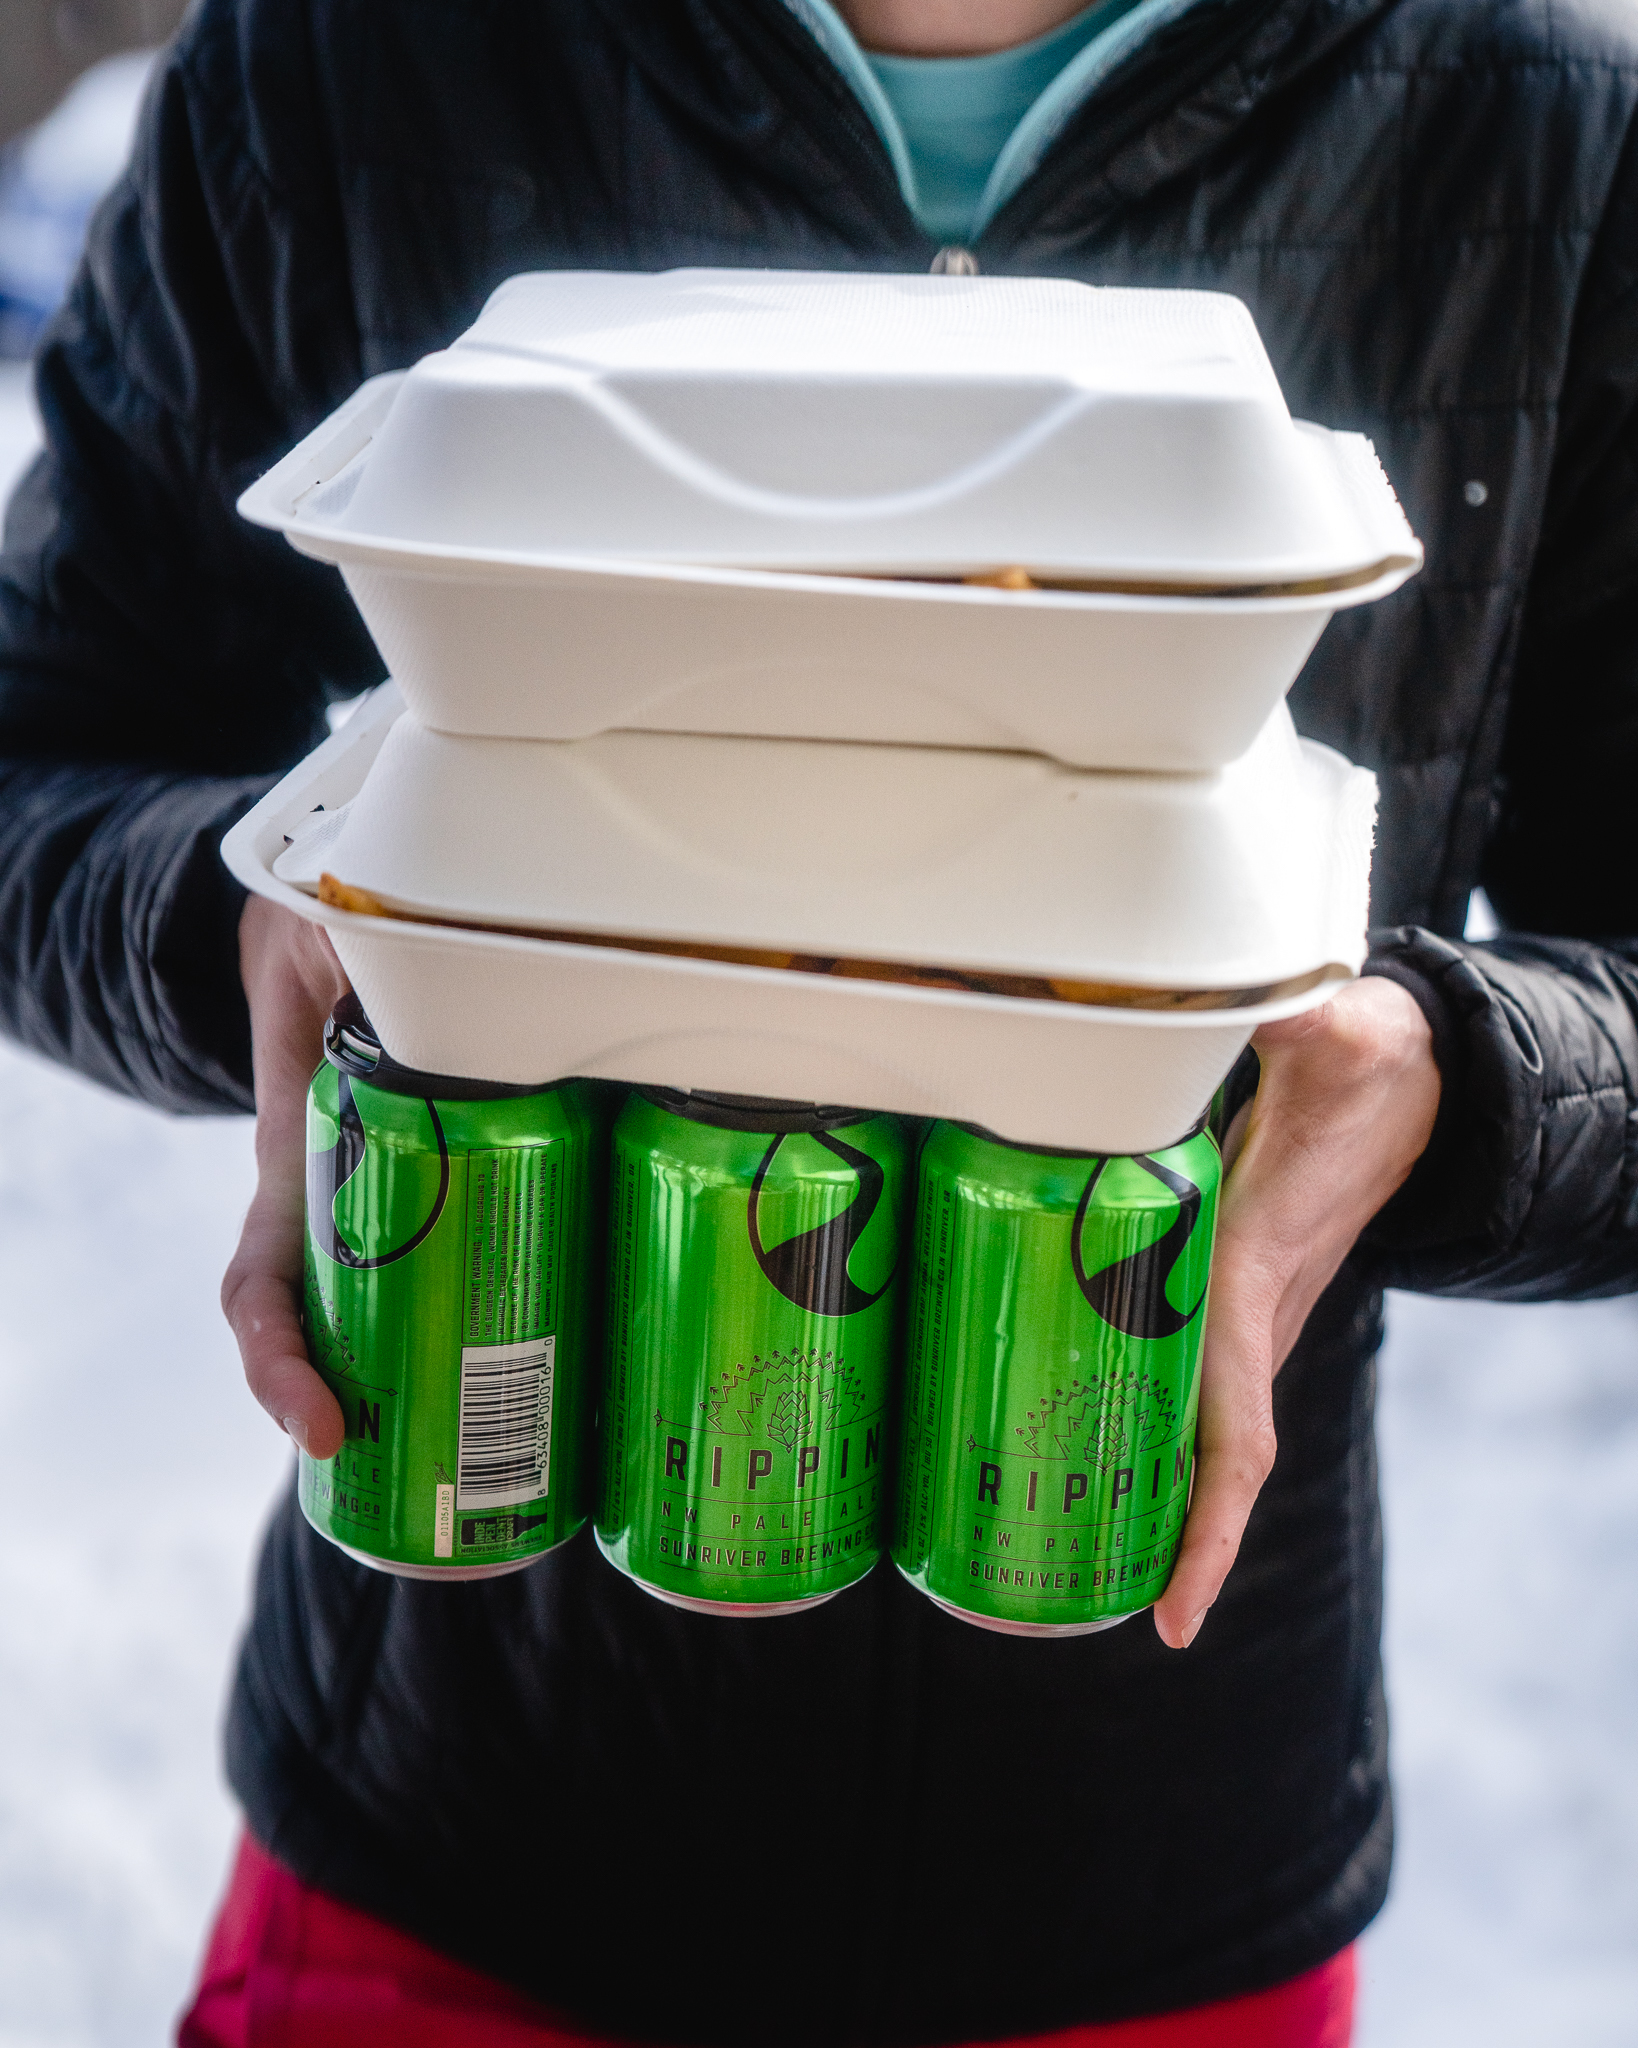 Sunriver Brewing takeout.